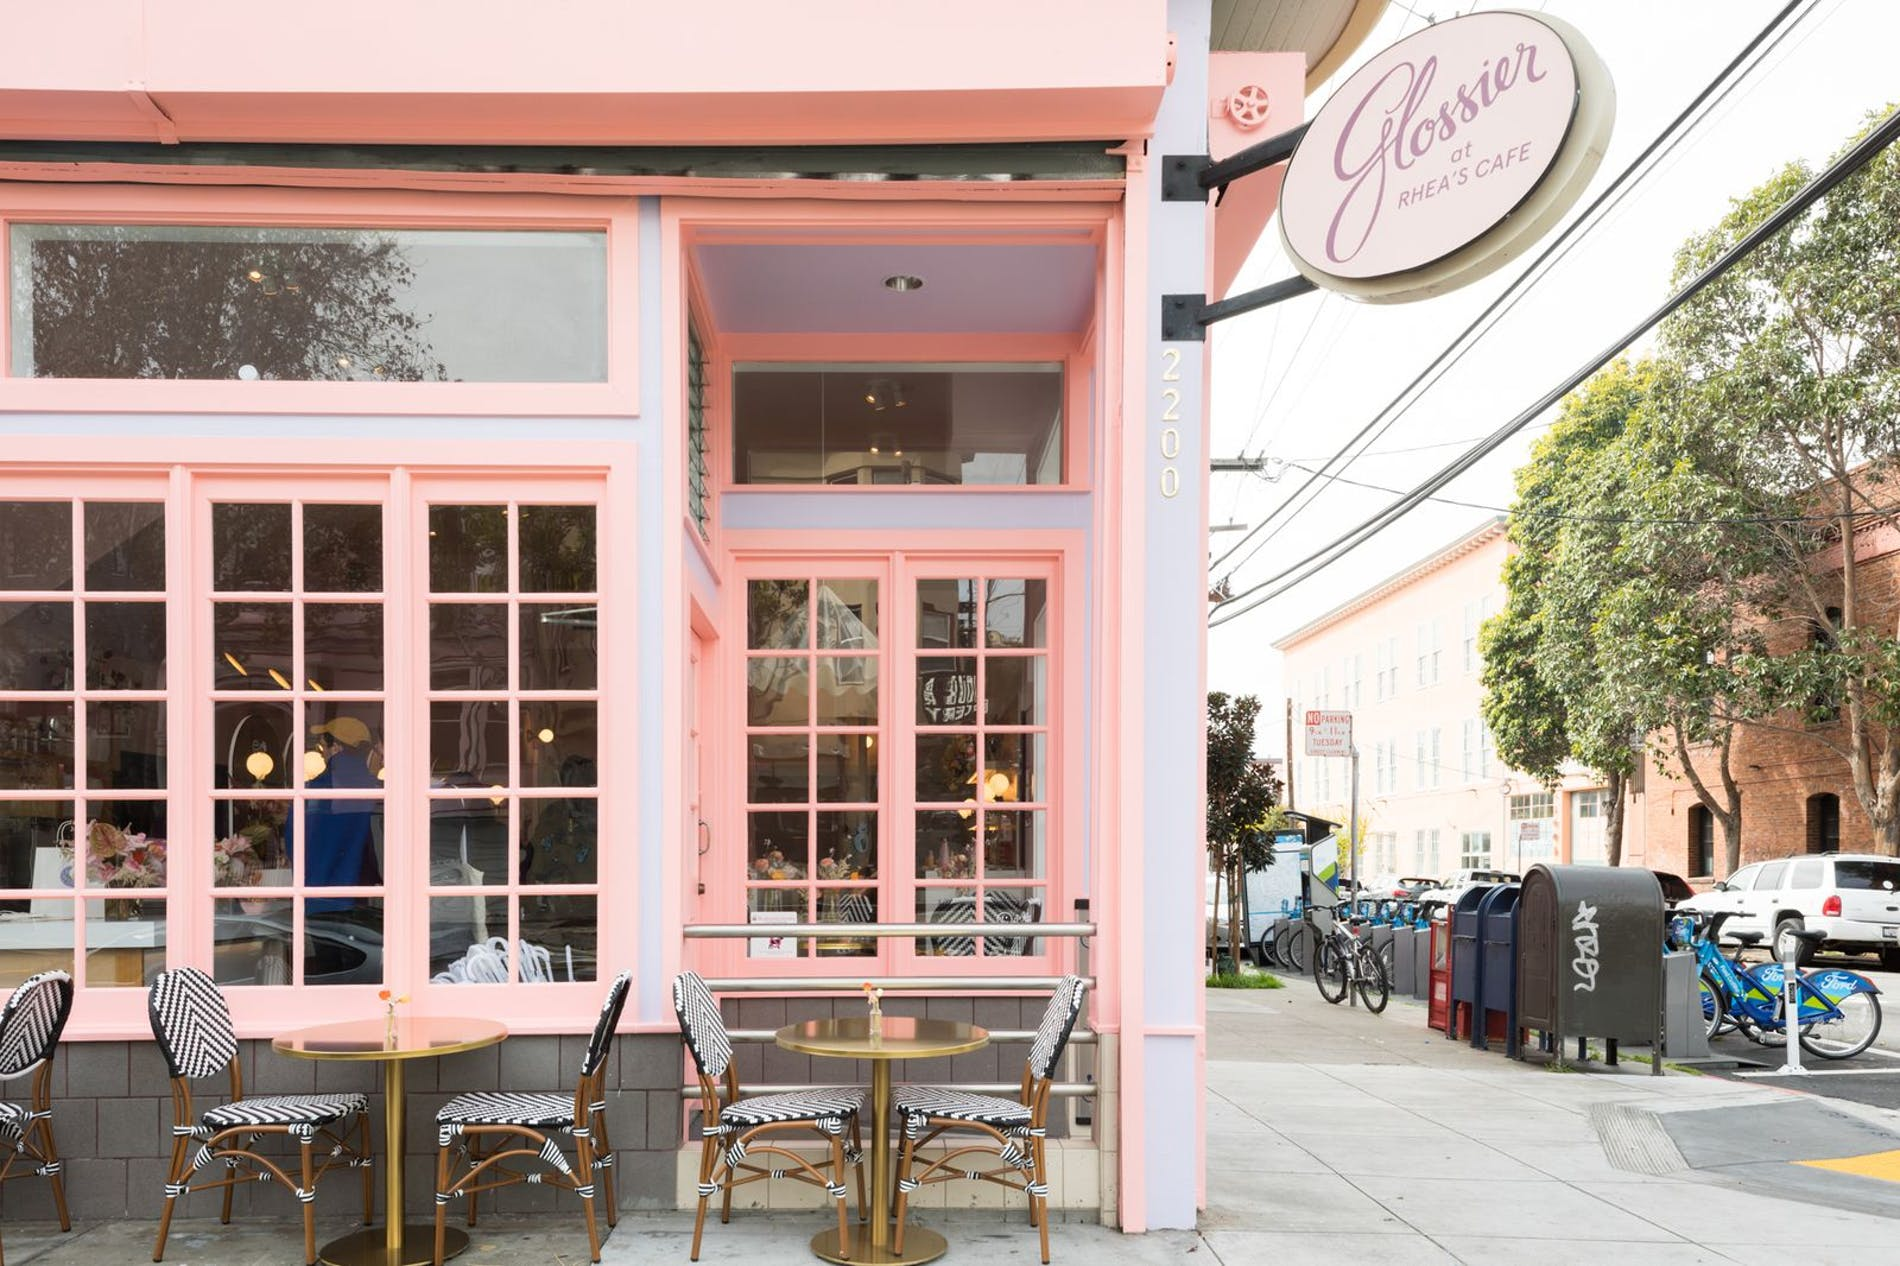 Glossier at Rhea's Cafe in San Francisco, design and photography by Glossier